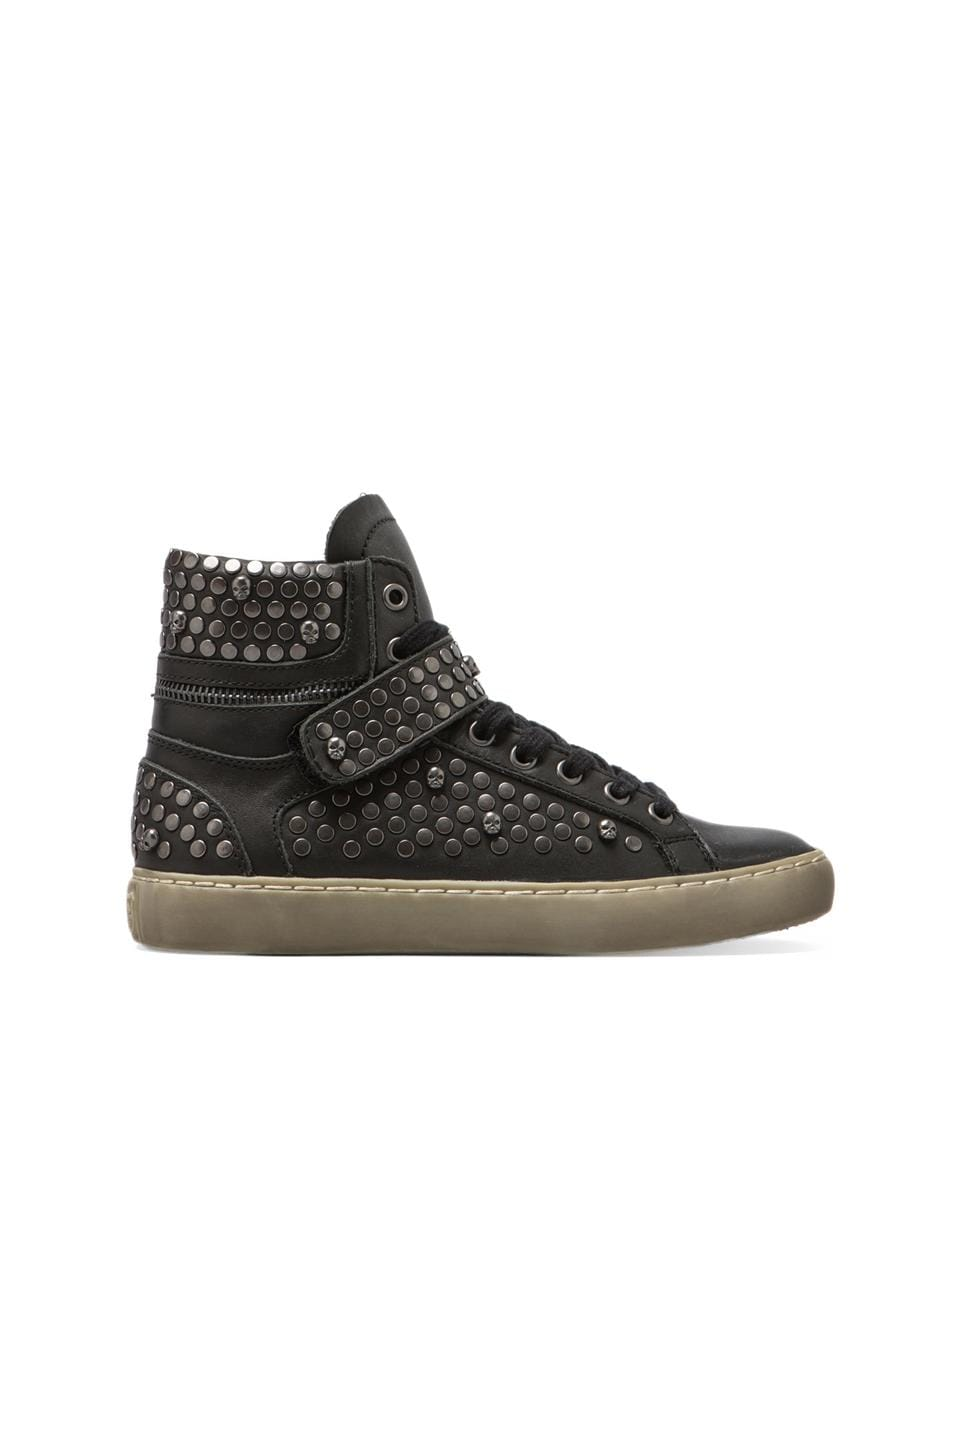 Ash Sandy Sneaker in Black/Antic Gun Studs